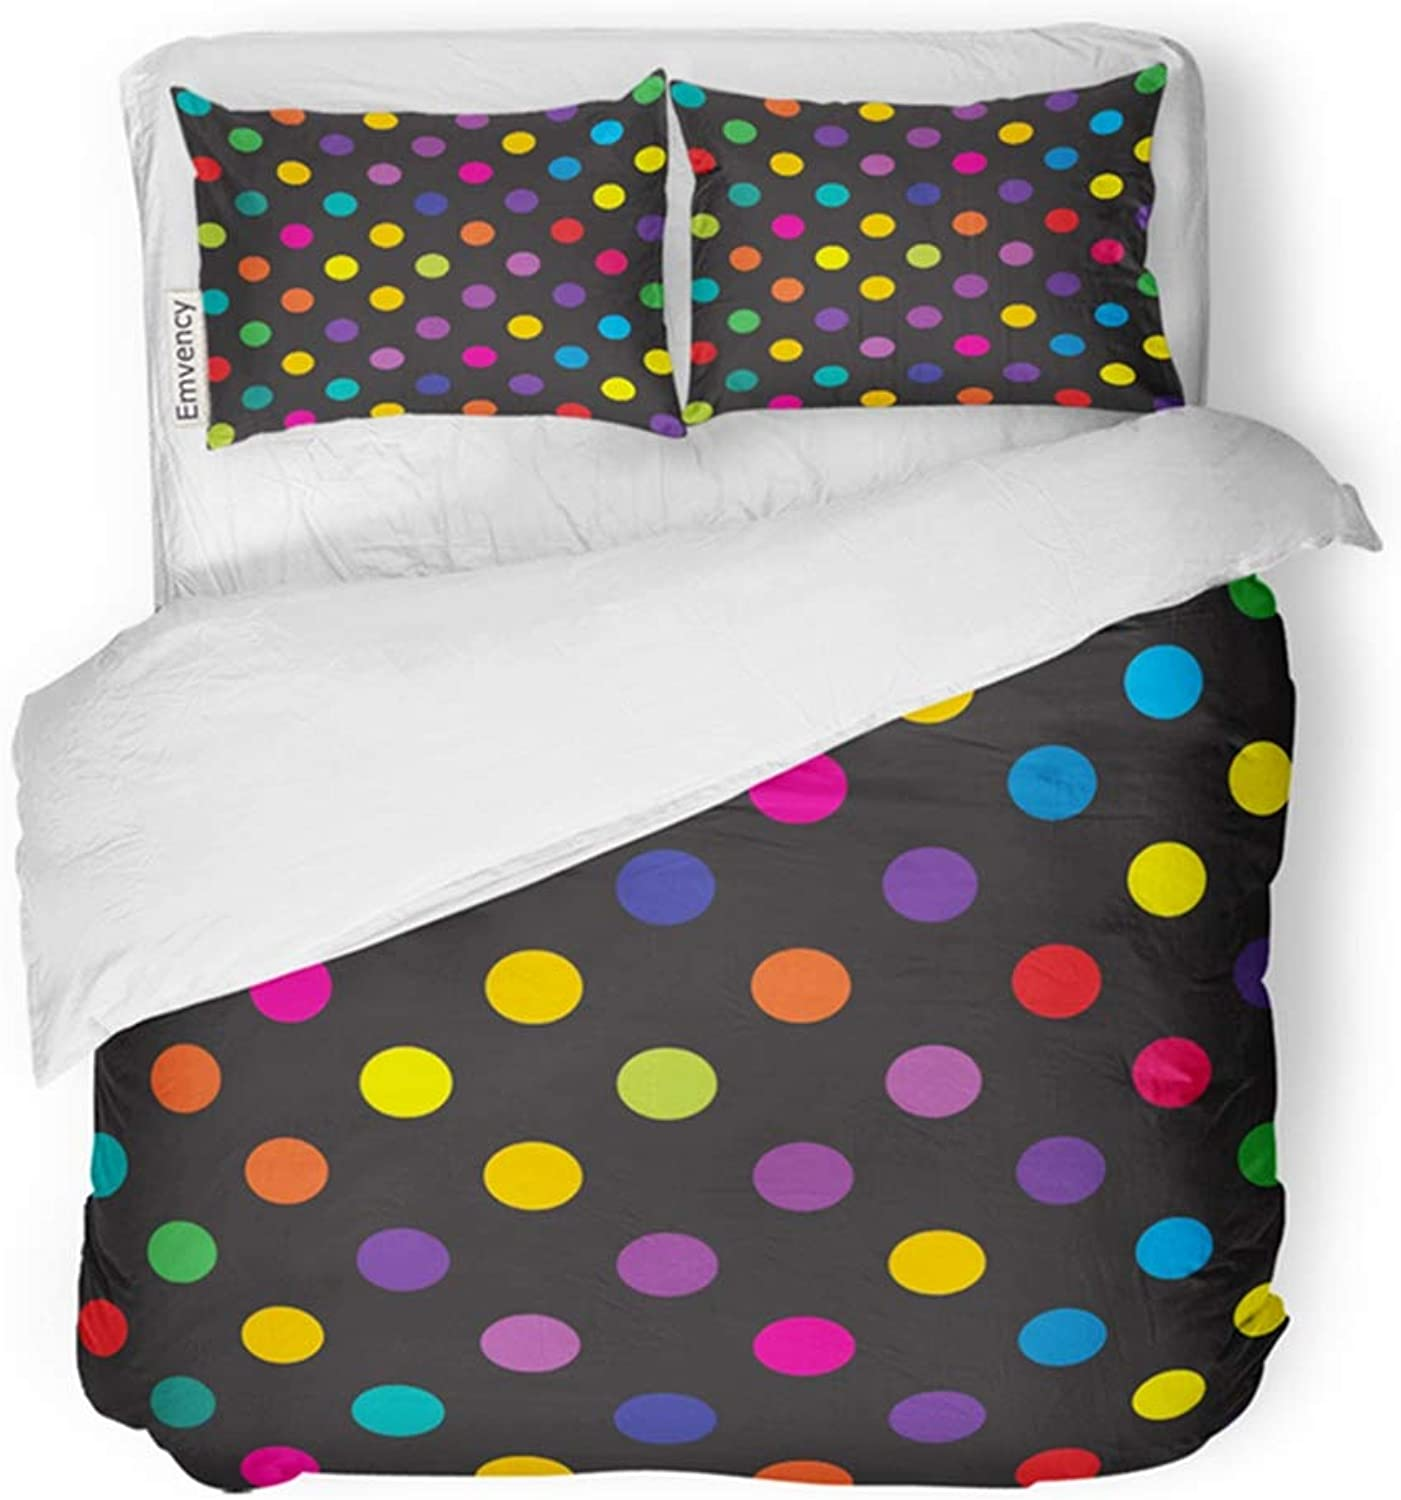 Emvency Bedding Duvet Cover Set Twin (1 Duvet Cover + 1 Pillowcase) Backround Retro Inspired Youthful Polka Dot Pattern in Candy colors Fun Hotel Quality Wrinkle and Stain Resistant